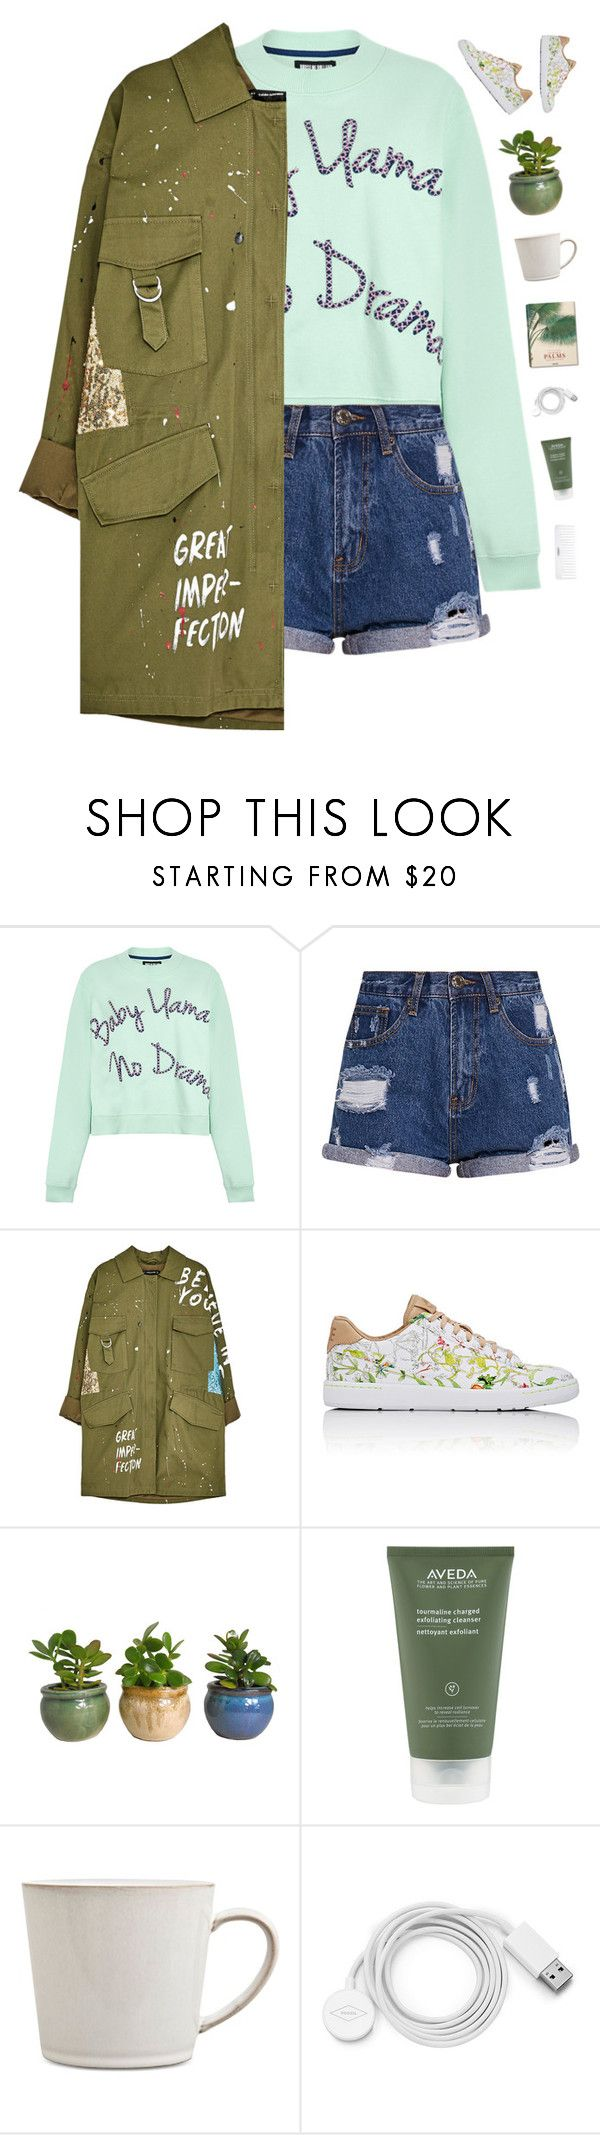 """""""All I want is you"""" by genesis129 ❤ liked on Polyvore featuring House of Holland, NIKE, Taschen, Aveda, Denby, FOSSIL, Conair and vintage"""